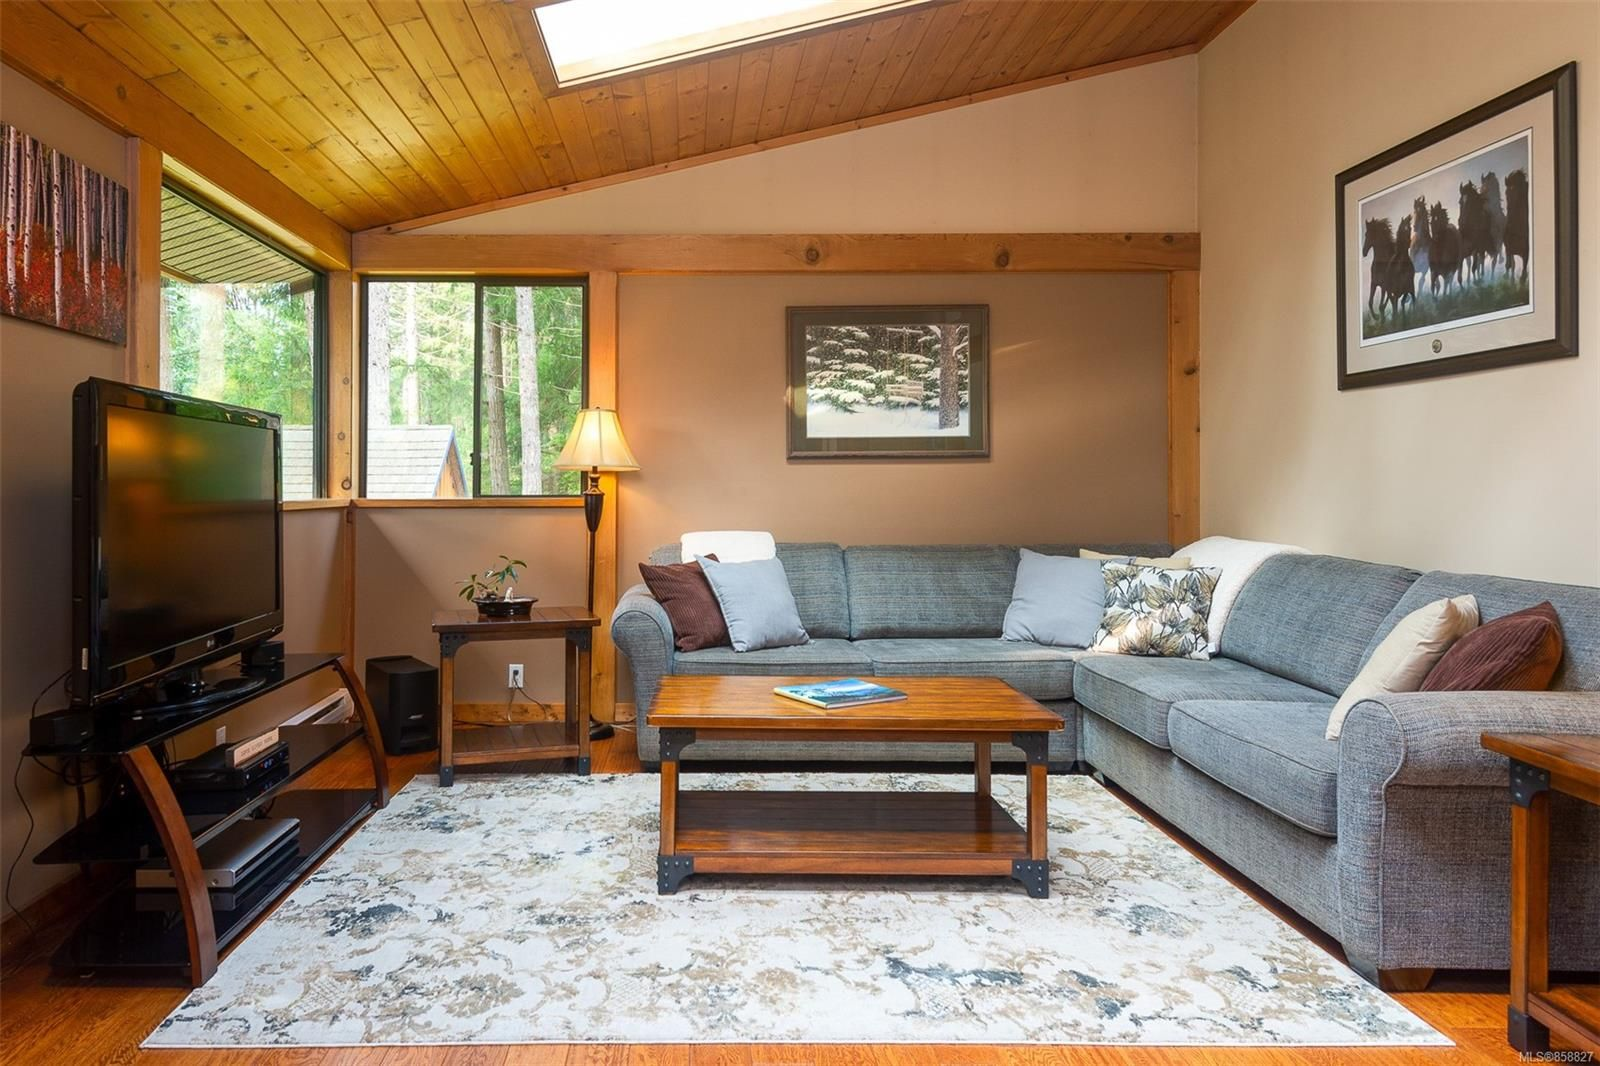 Photo 3: Photos: 1137 North End Rd in : GI Salt Spring House for sale (Gulf Islands)  : MLS®# 858827